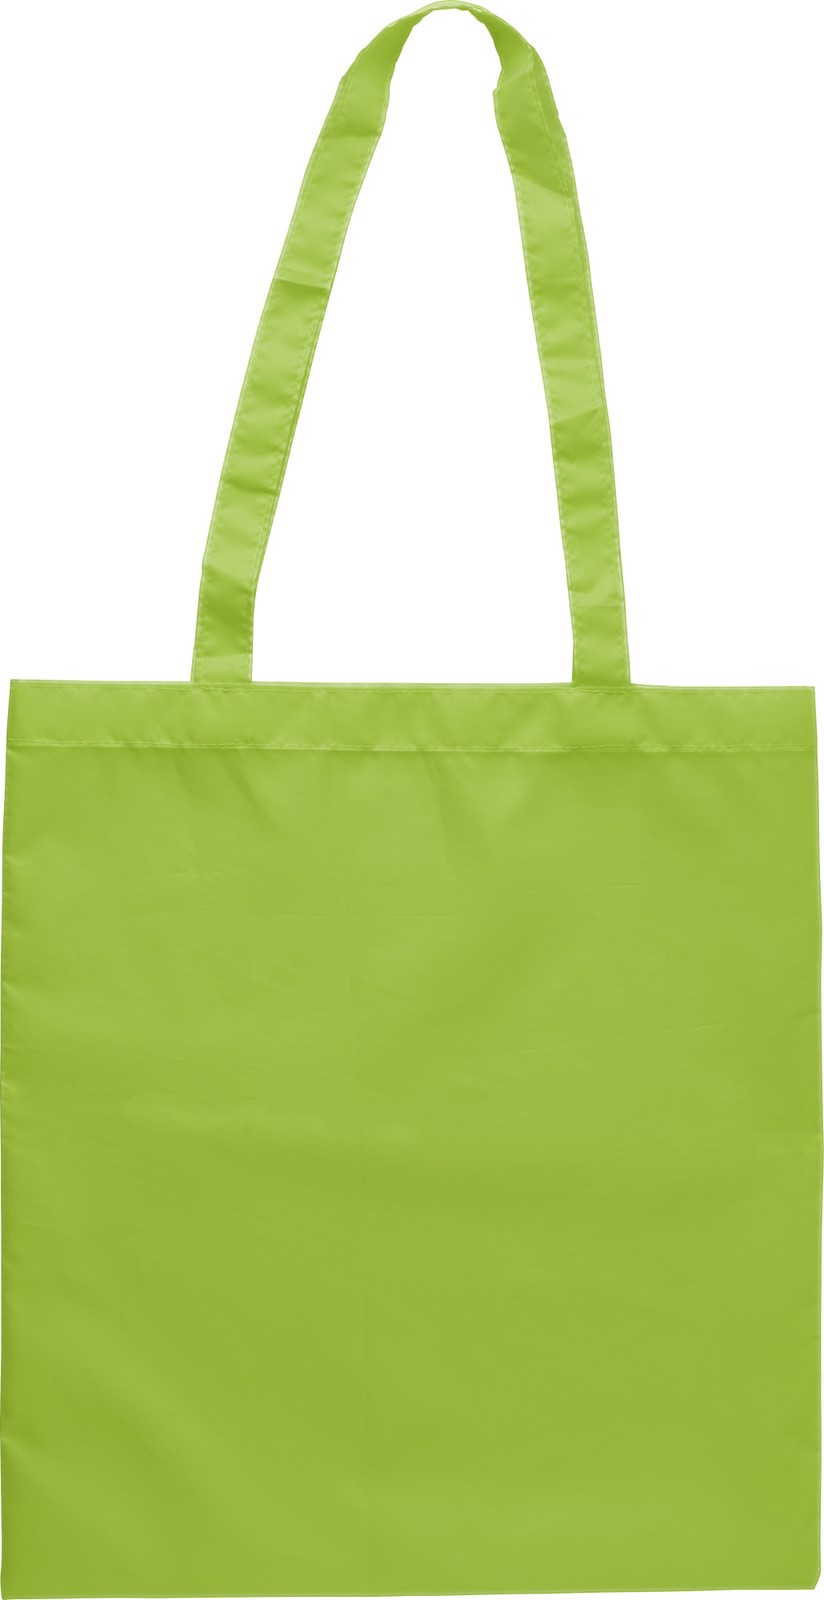 RPET polyester (190T) shopping bag - Lime